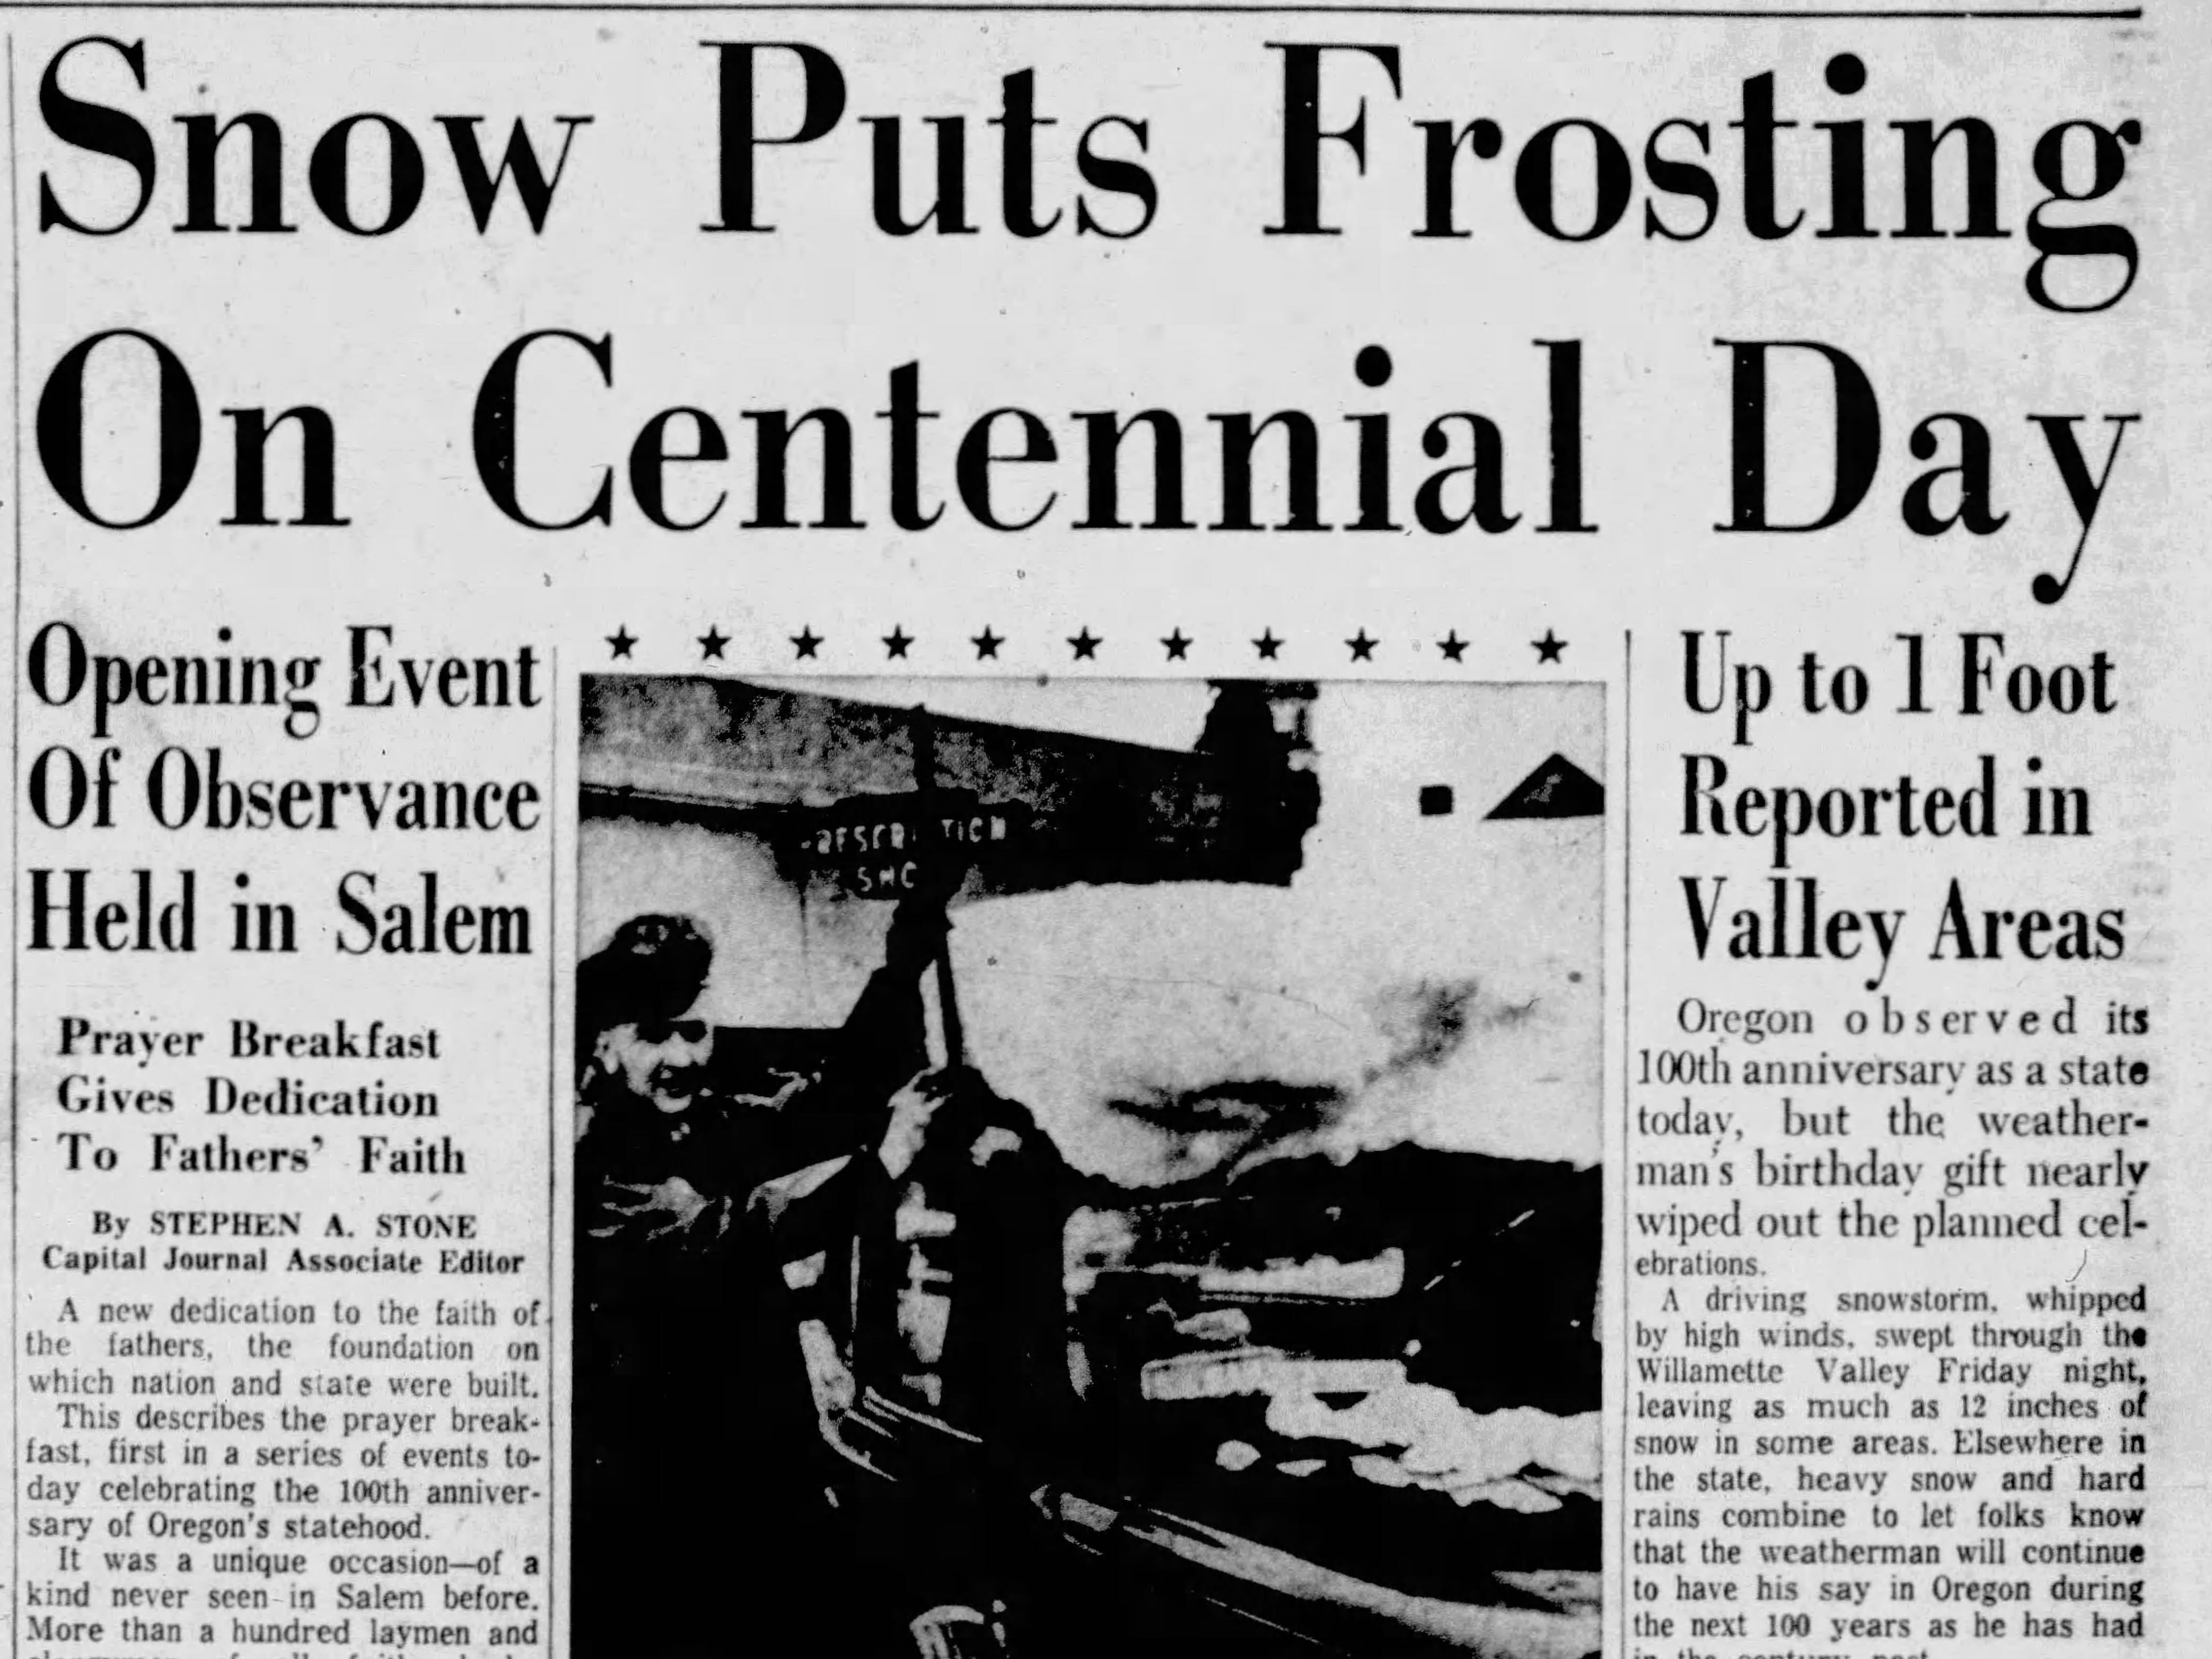 A section of the Capitol Journal frontpage from Feb. 14, 1959, the day of Oregon's centennial.